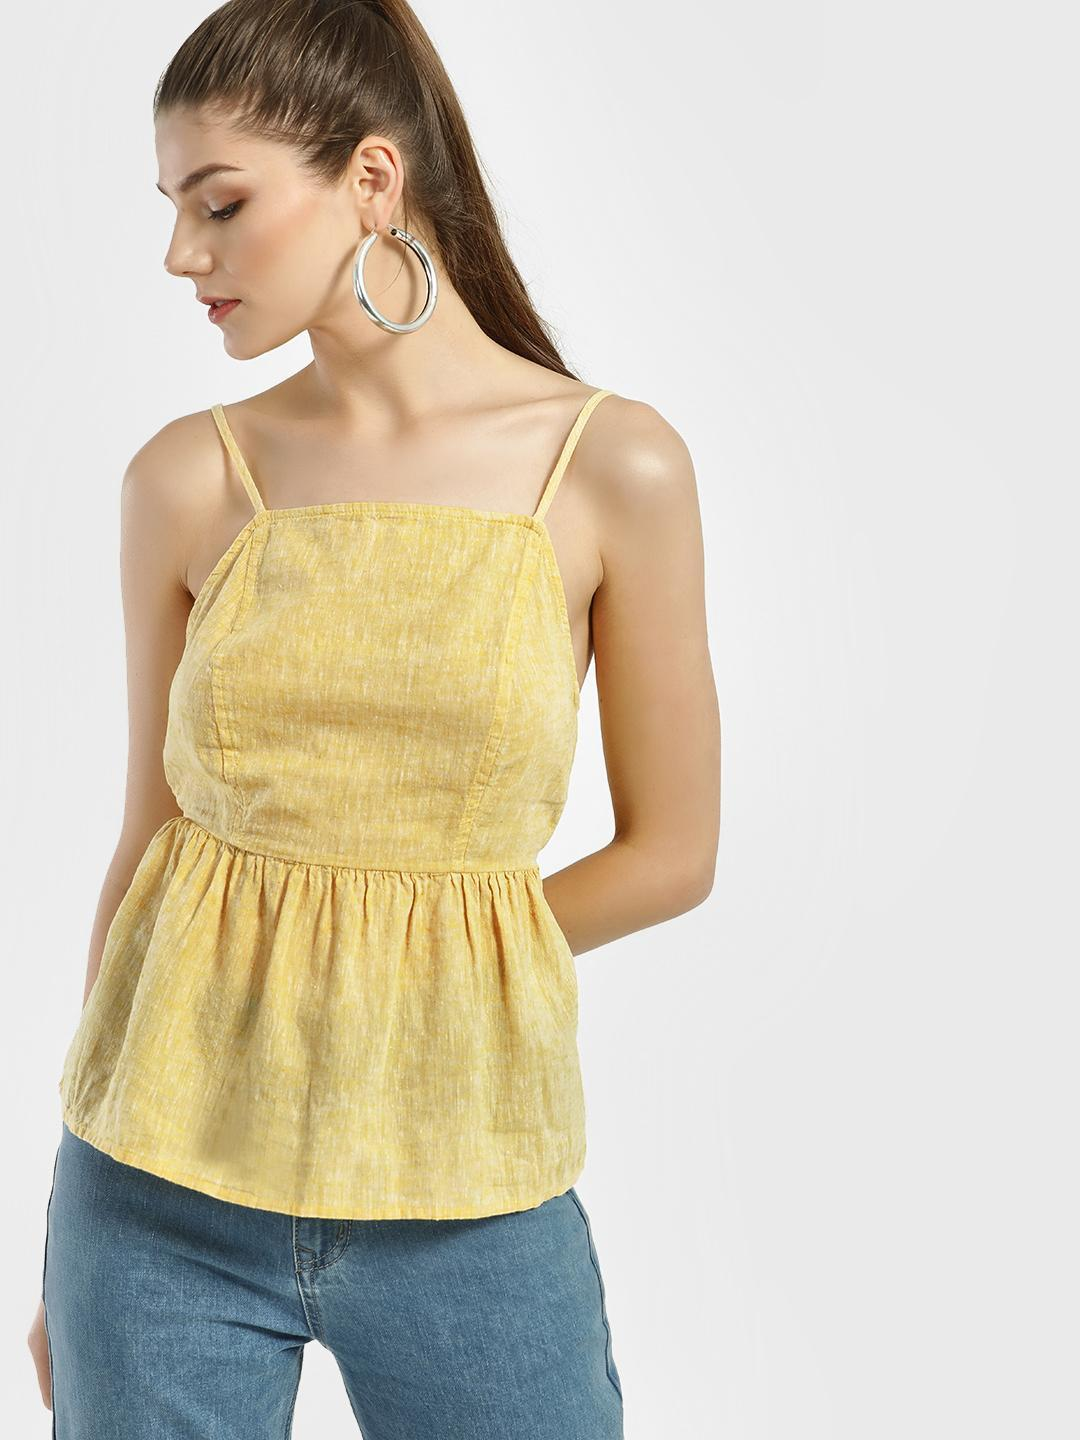 New Look BRIGHT YELLOW Back Tie-Knot Cami Top 1